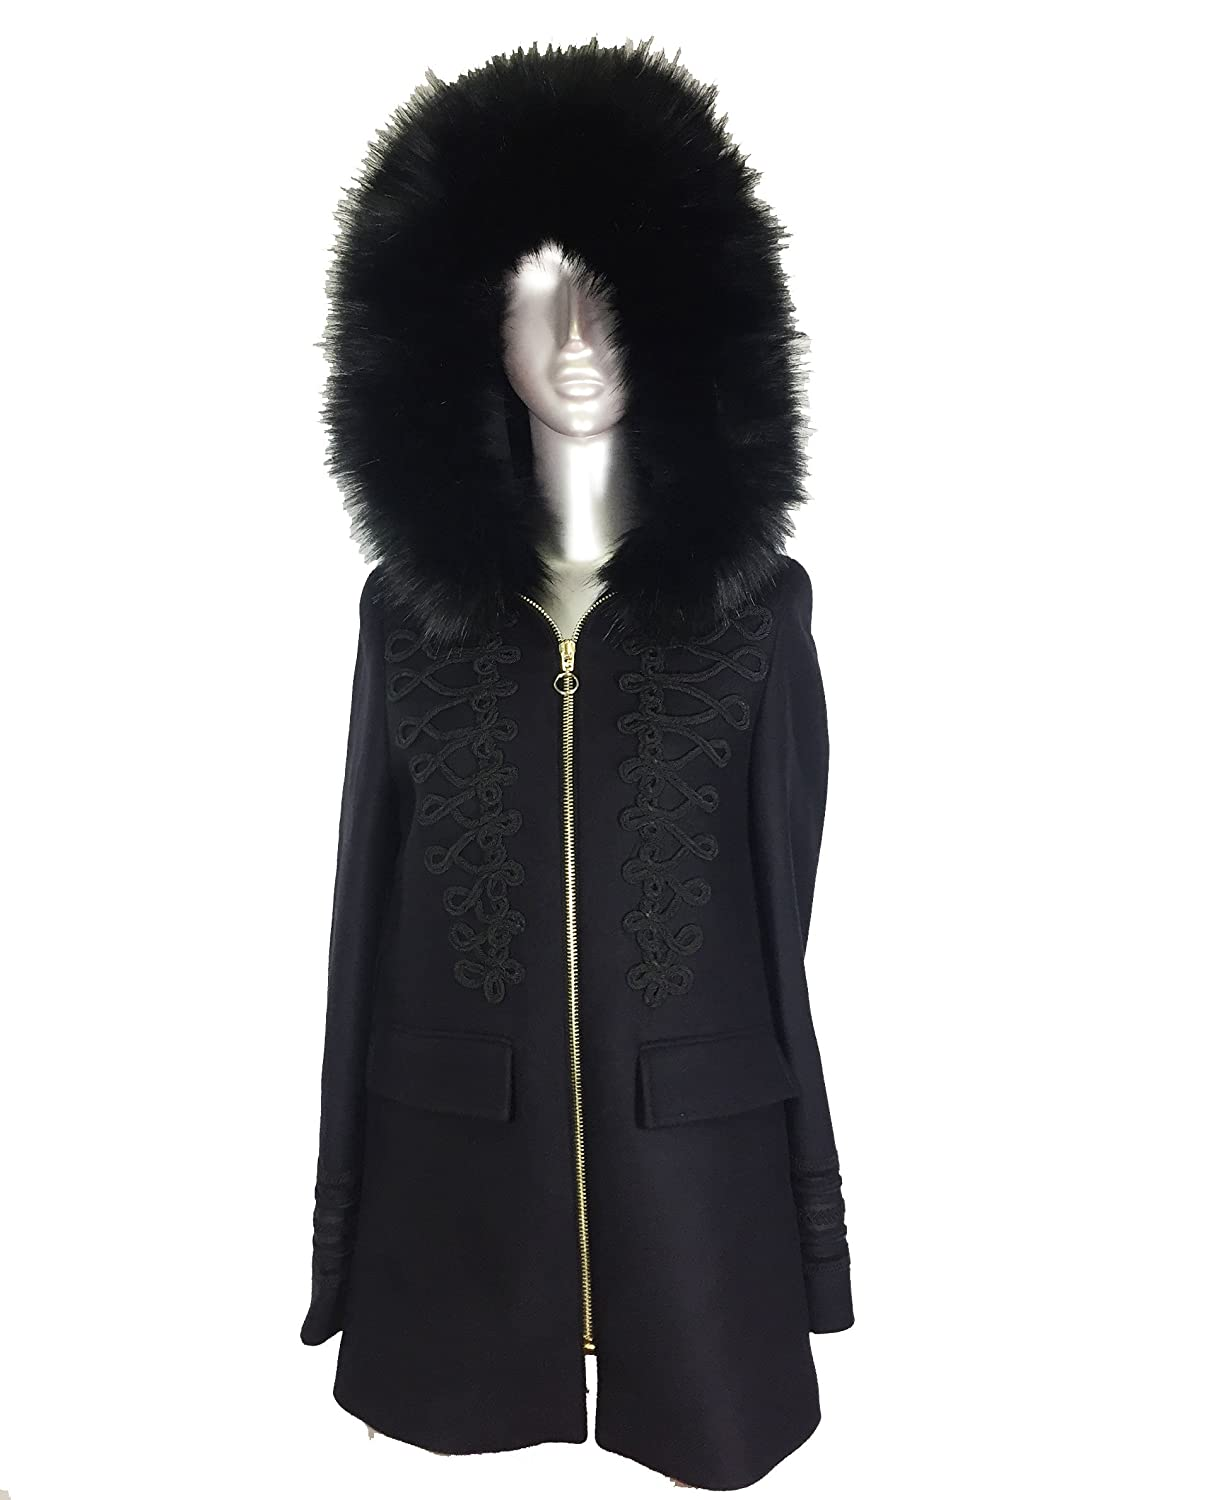 f9d04bc5 Zara Women's Duffle coat with faux fur hood 8383/744 (X-Large ...